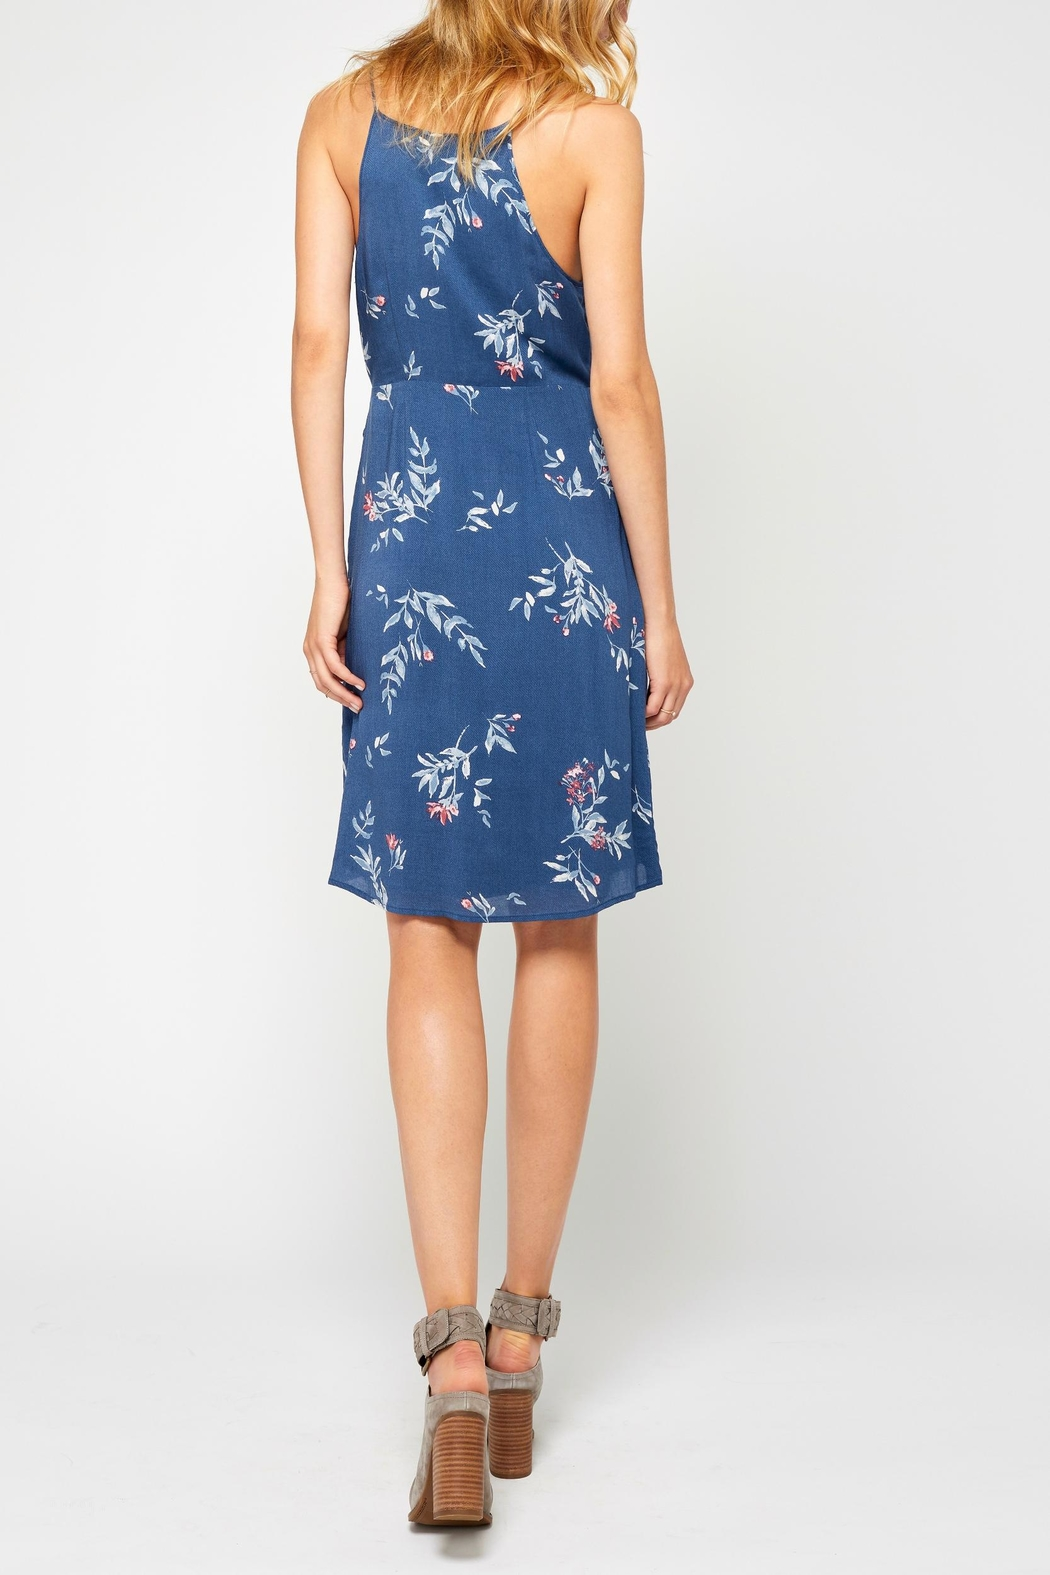 Gentle Fawn Blue Print Dress - Side Cropped Image